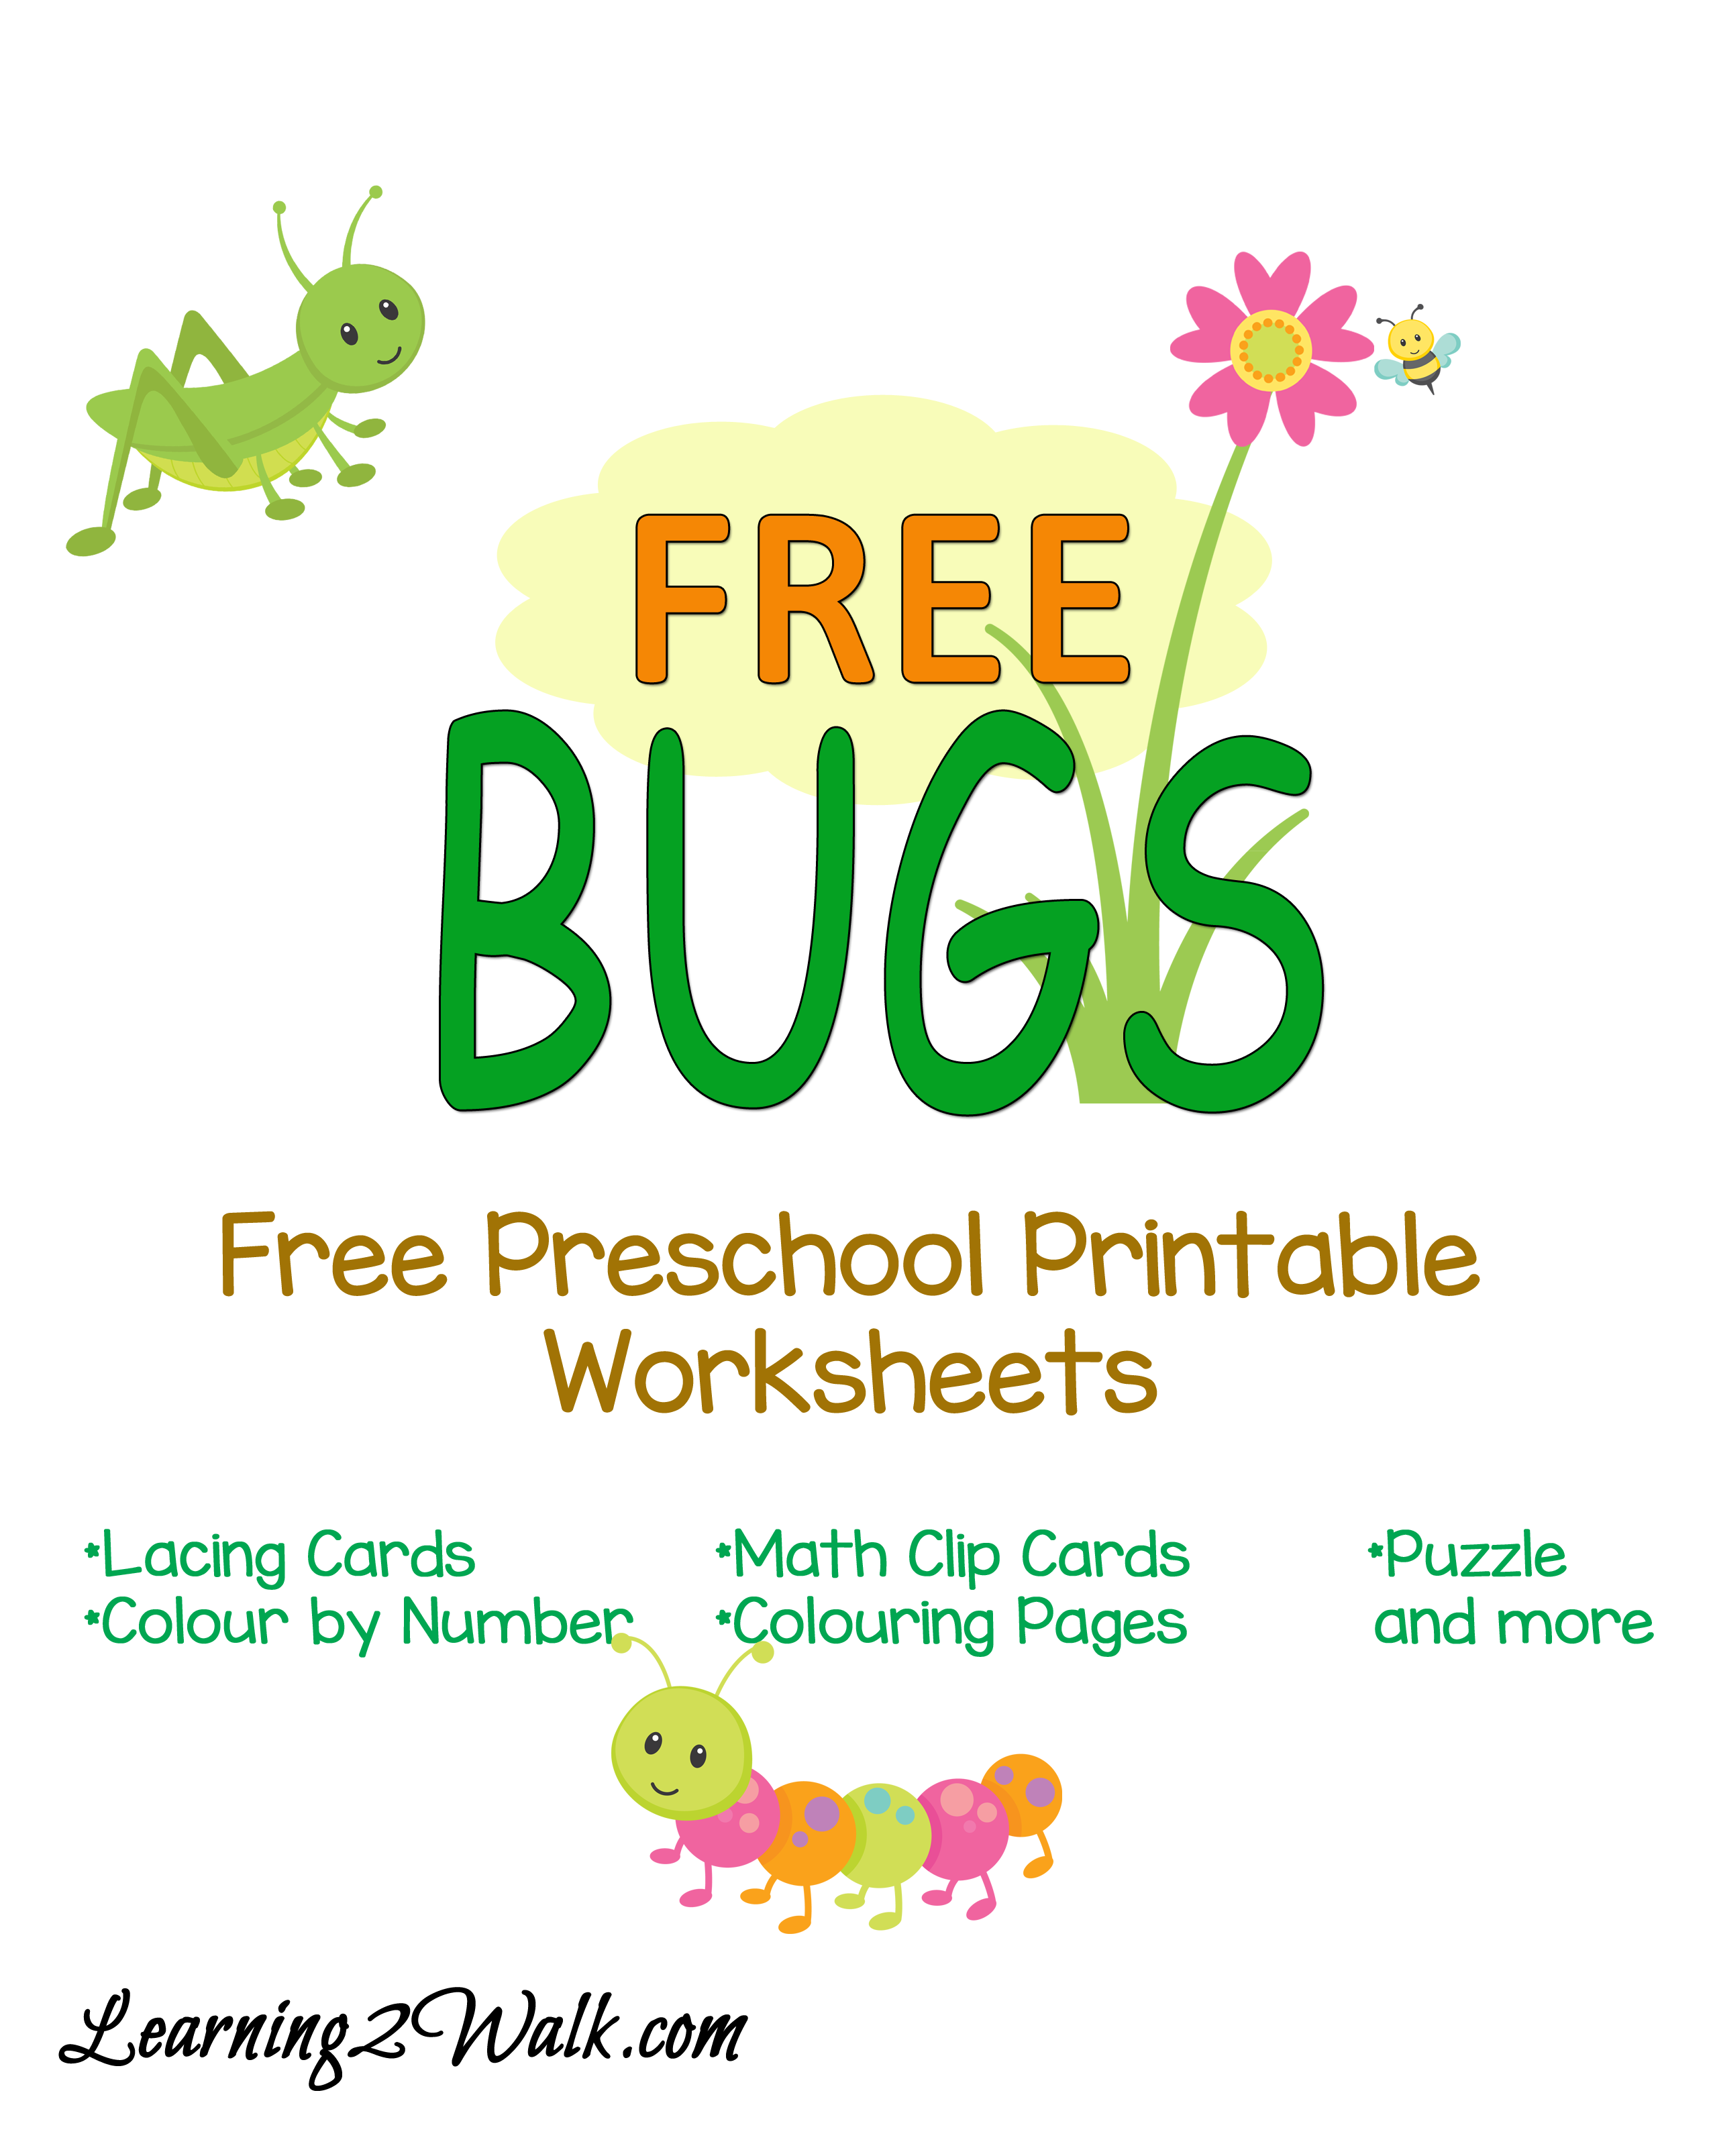 Worksheet Worksheets Printable Free free bugs preschool printable worksheets bring on the but keep them at a safe distance of course